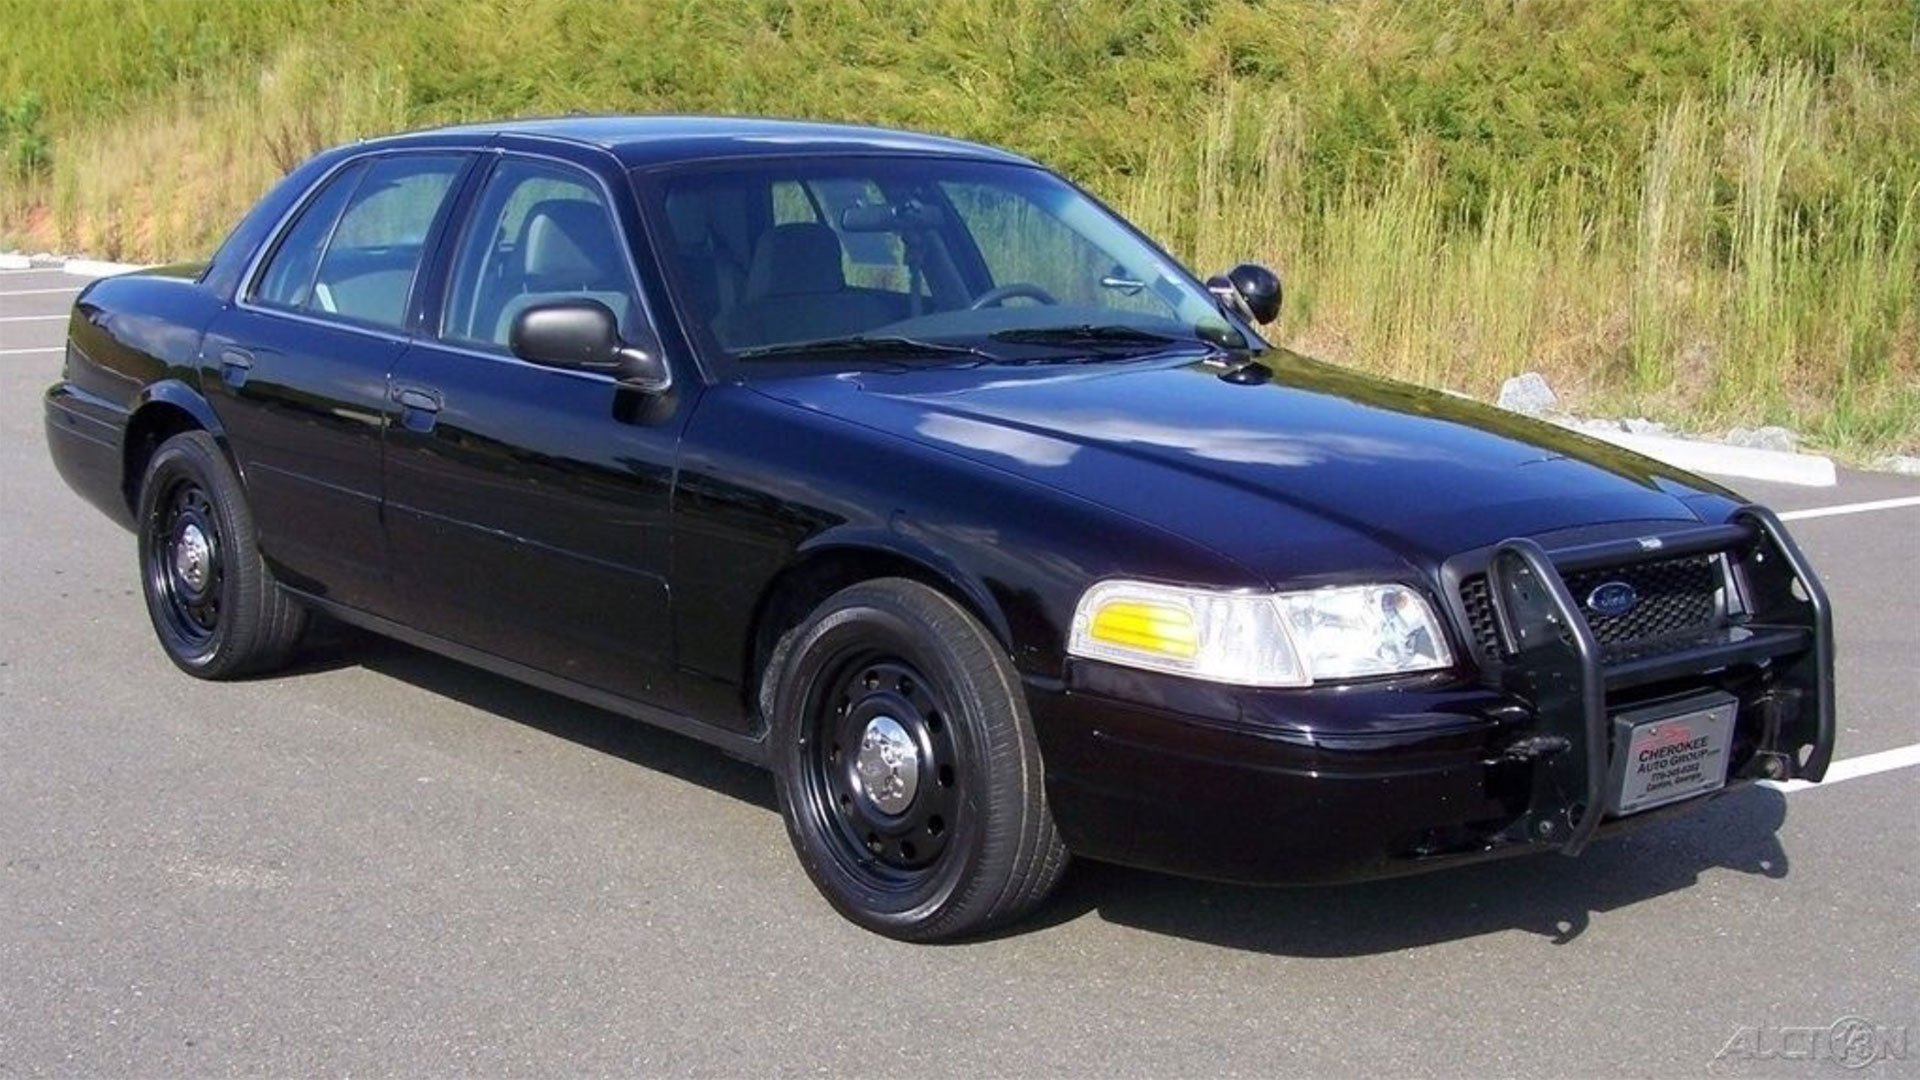 a used police car may be the best first car